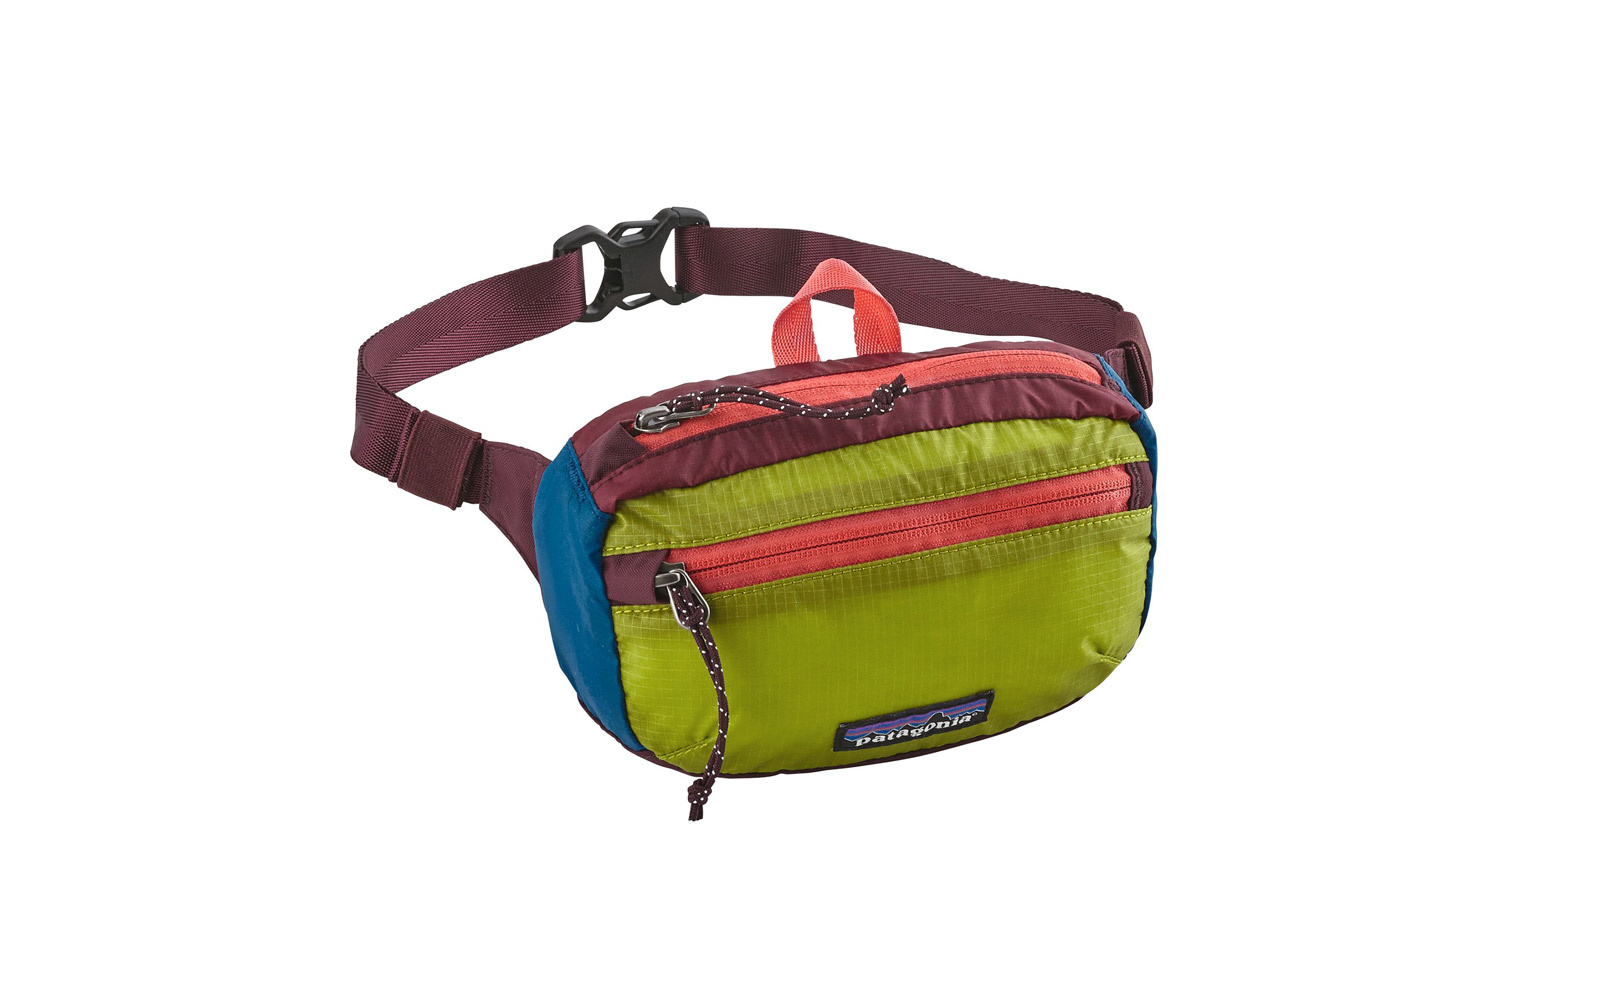 a5b030af3a3 Cute Fanny Packs and Belt Bags for Stylish Travelers